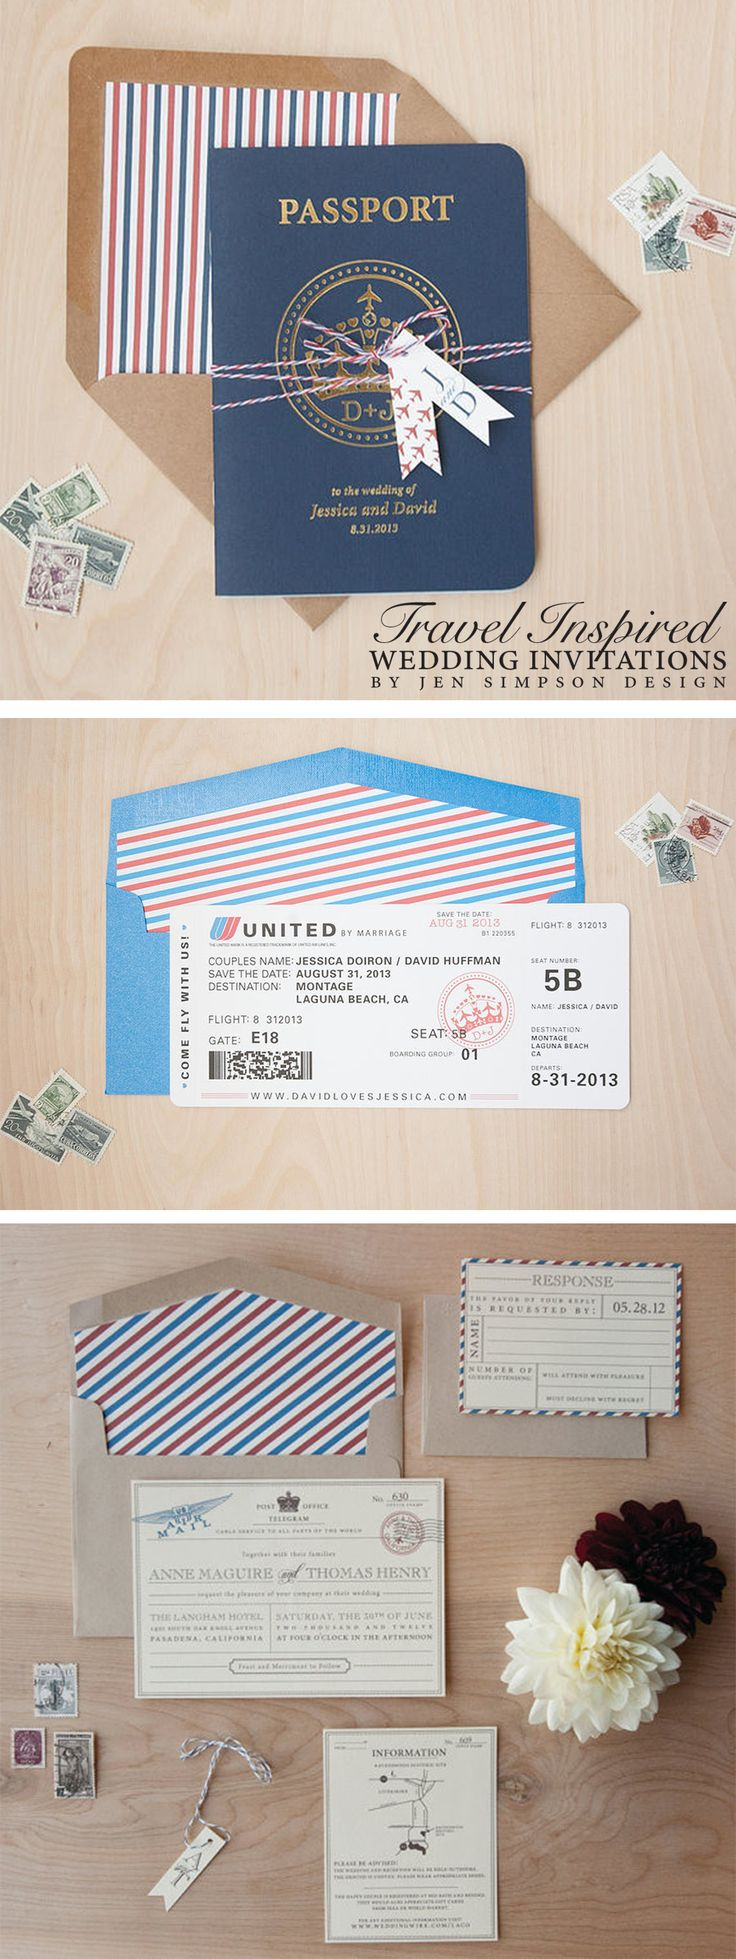 Travel inspired wedding invitations! Perfect for a destination wedding. Design by Jen Simpson Design #DestinationWedding